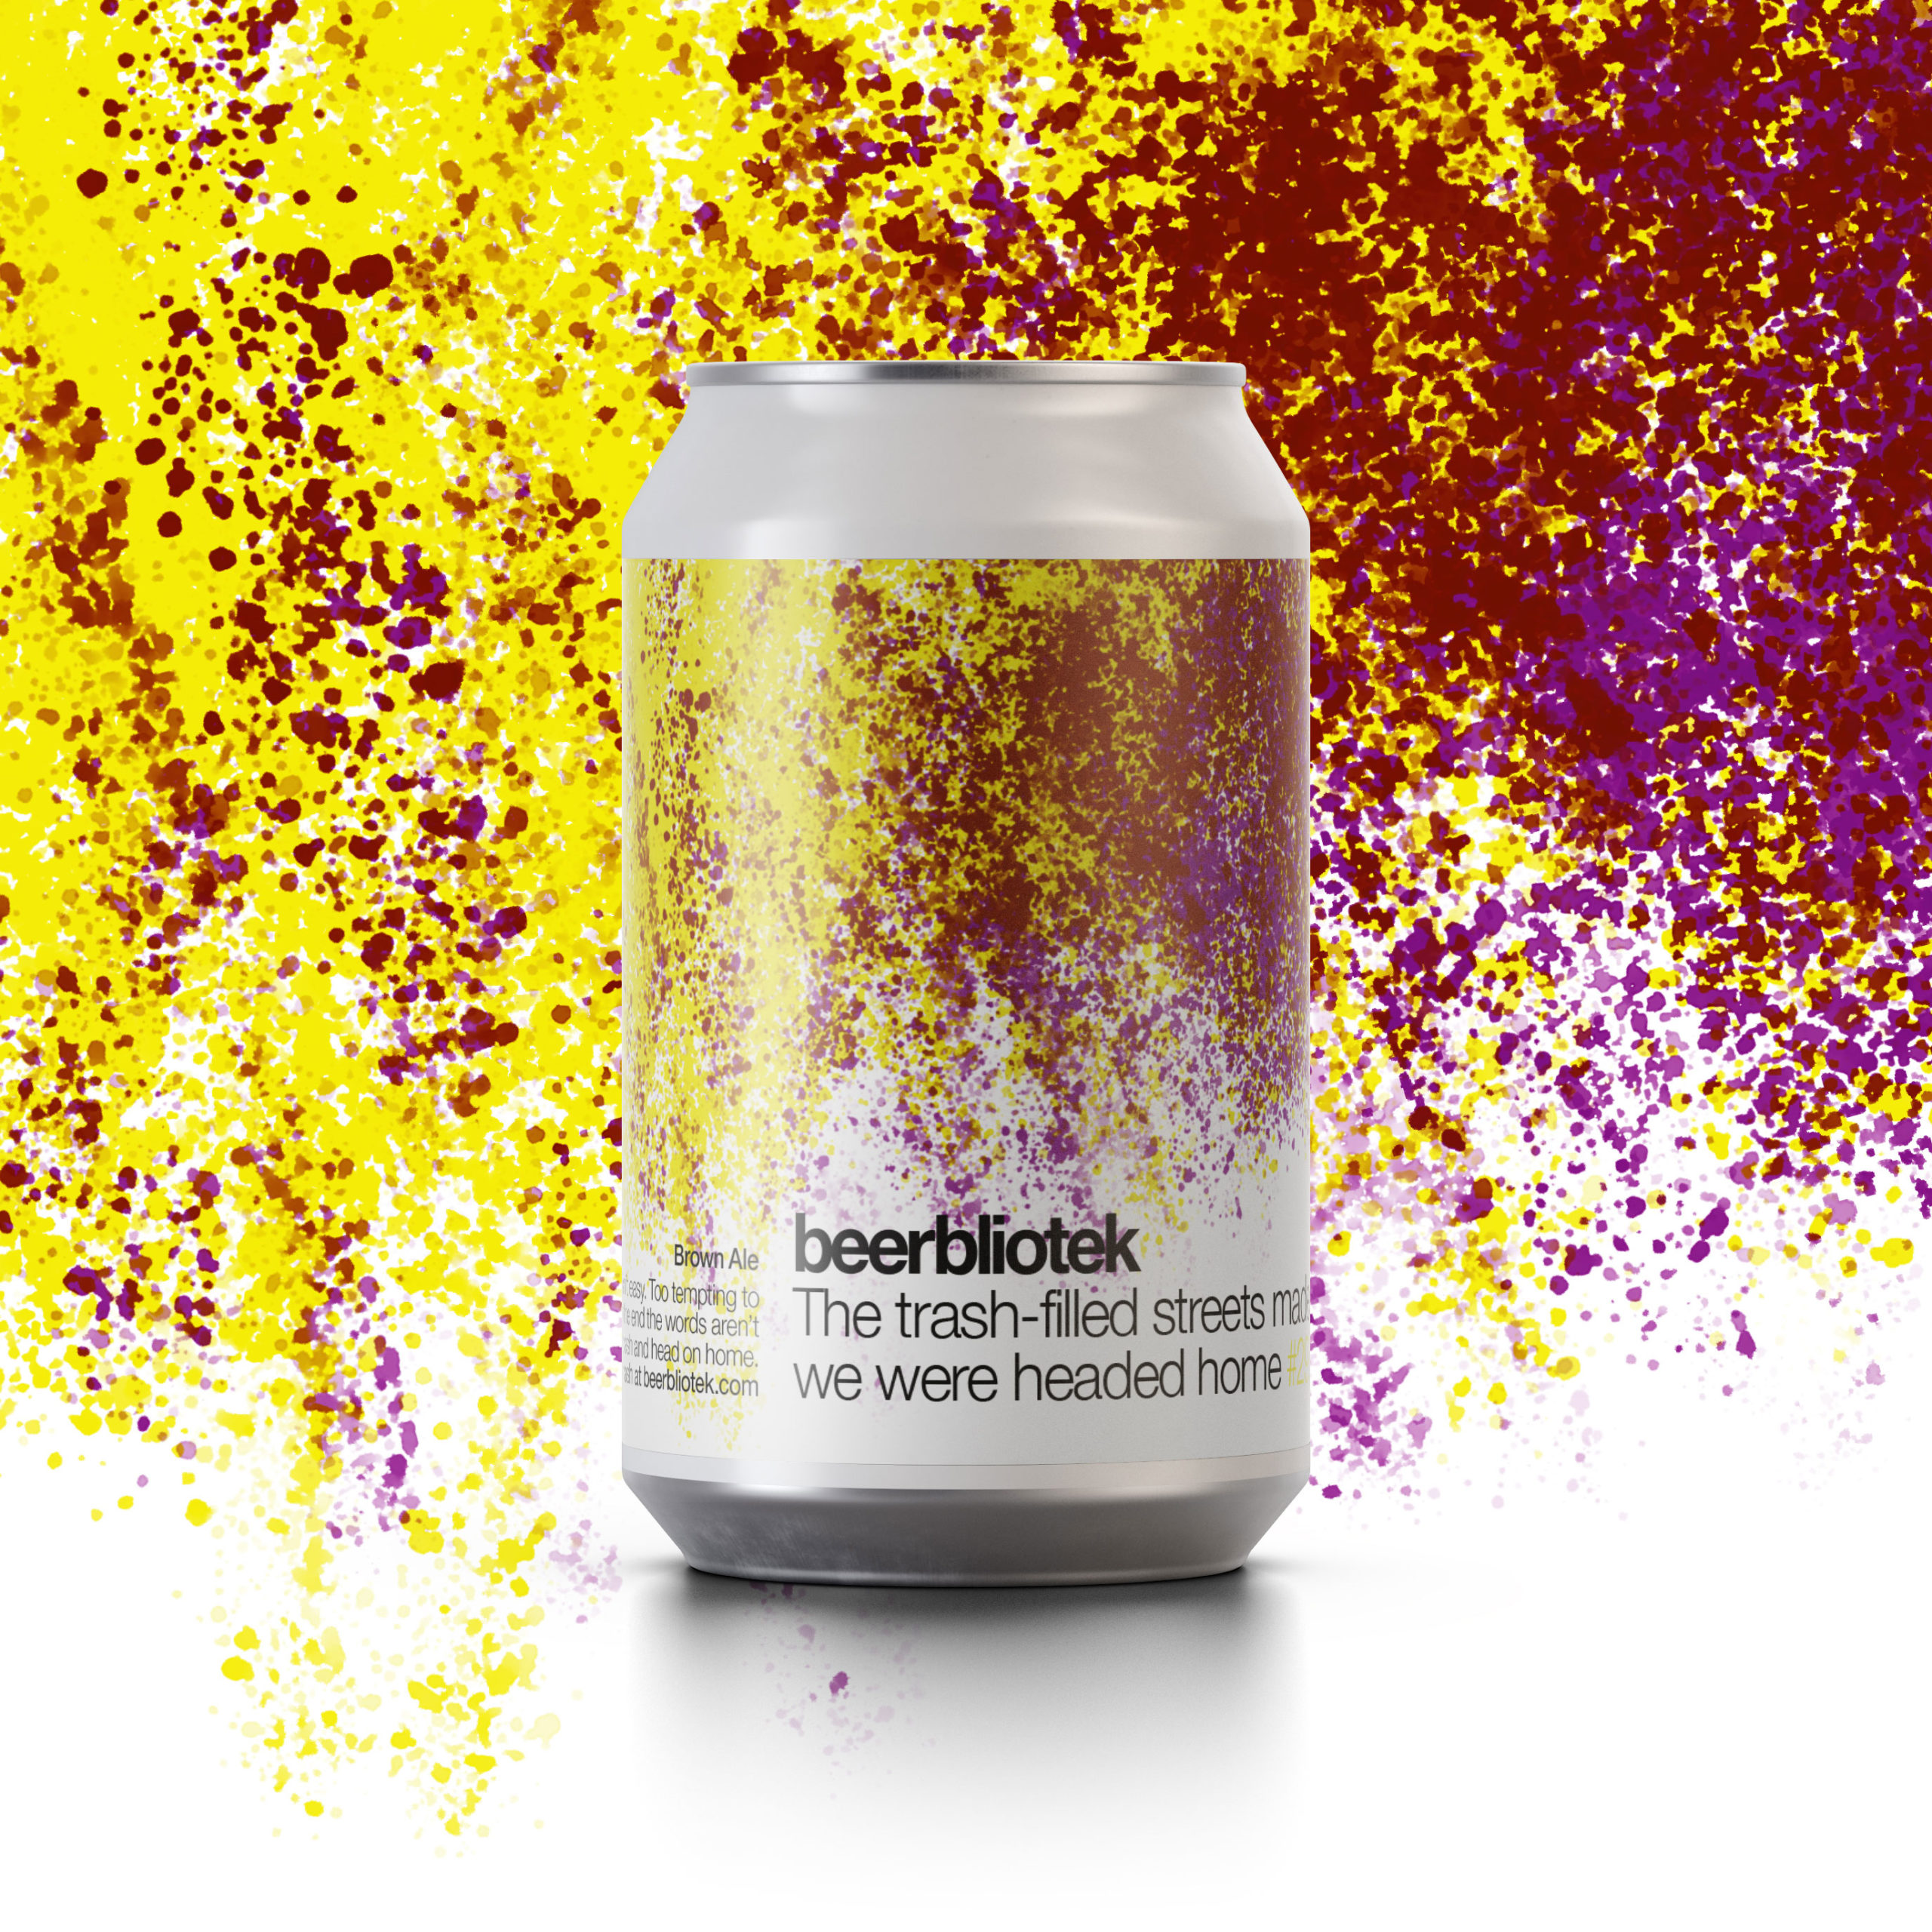 A can packshot of Make tiny changes to Earth, a Session IPA brewed in Gothenburg, by Swedish Craft Brewery Beerbliotek.